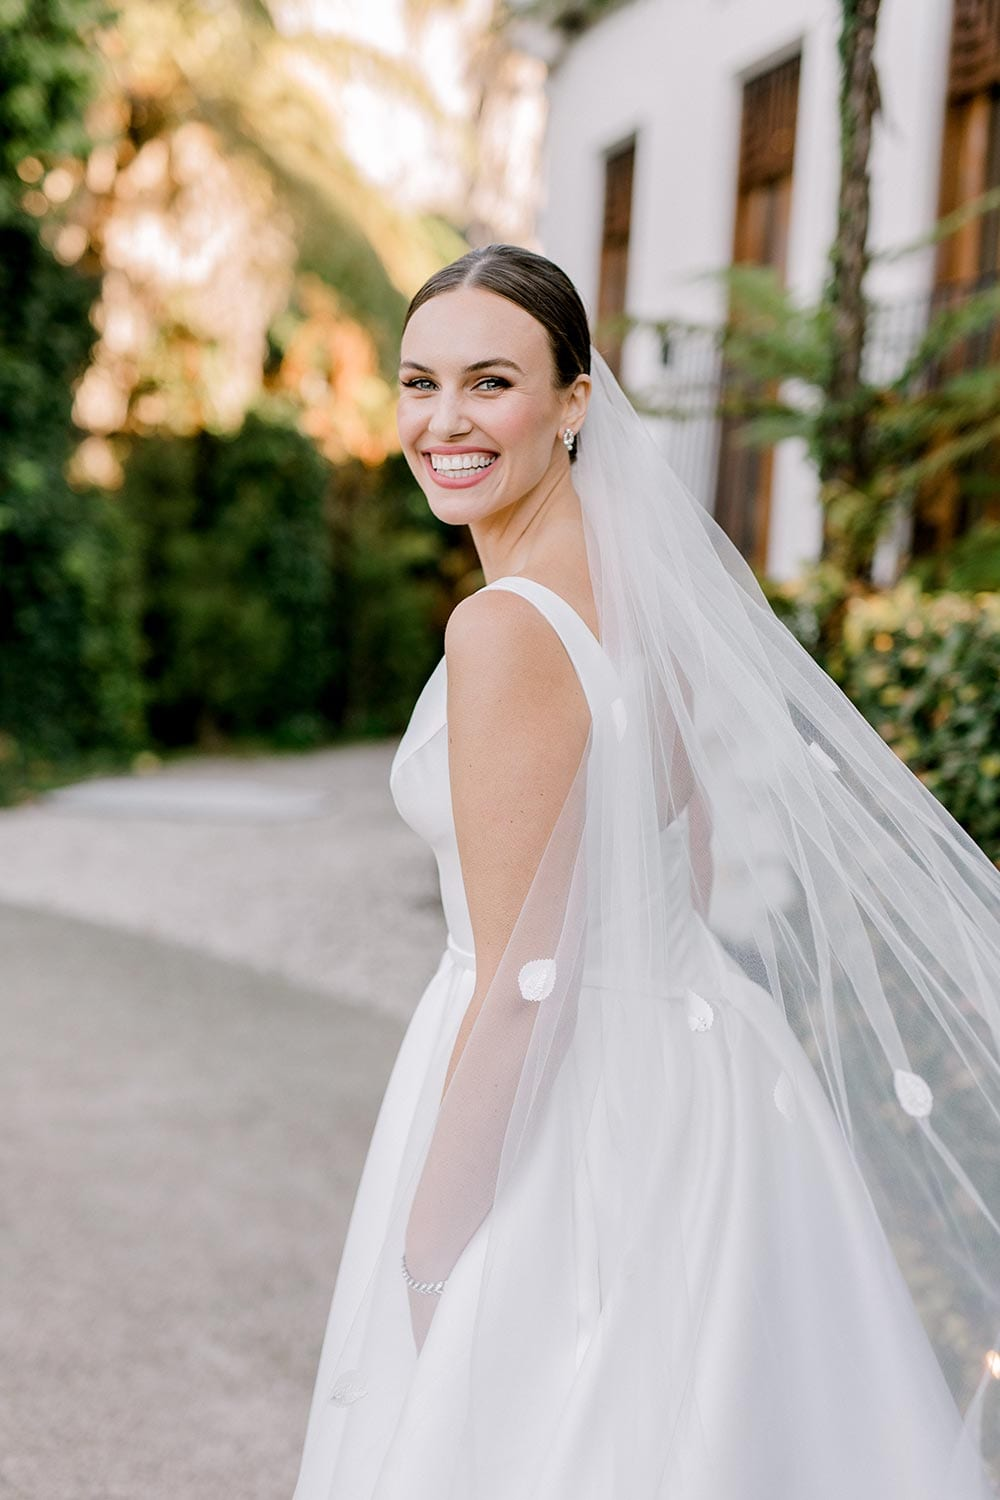 Madison Wedding Dress from Vinka Design. Classic Mikado satin wedding dress. Structured bodice with deep V-neckline & low back. Side pockets in the skirt give fun & versatility, with a sweeping train. View of gown from the side. Photographed outdoors.